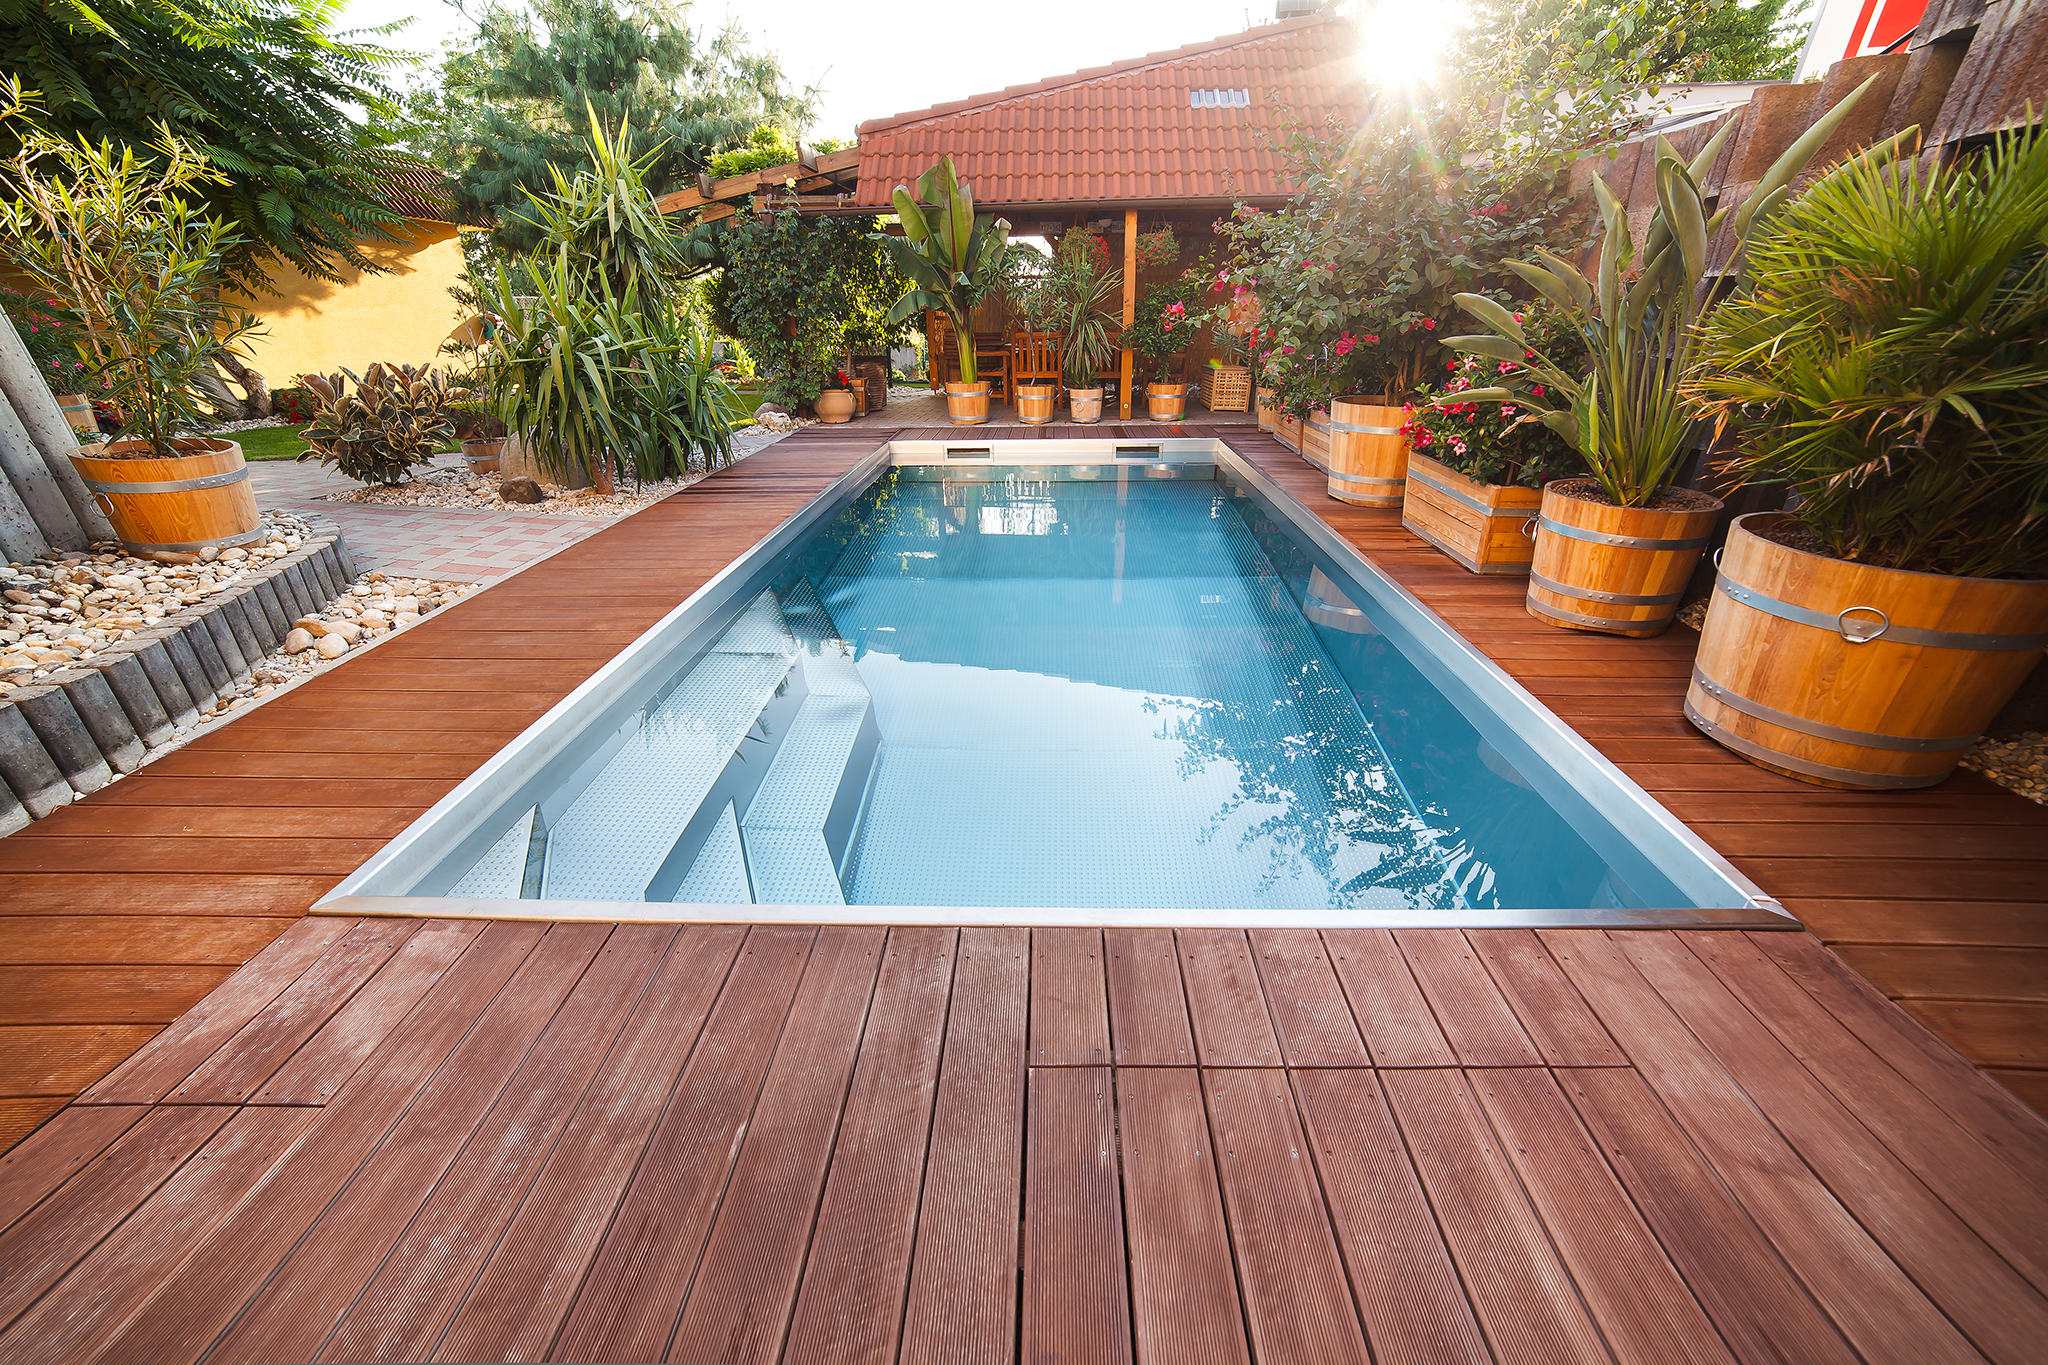 Renovation: Replacement of a Plastic Pool with a Stainless-Steel One